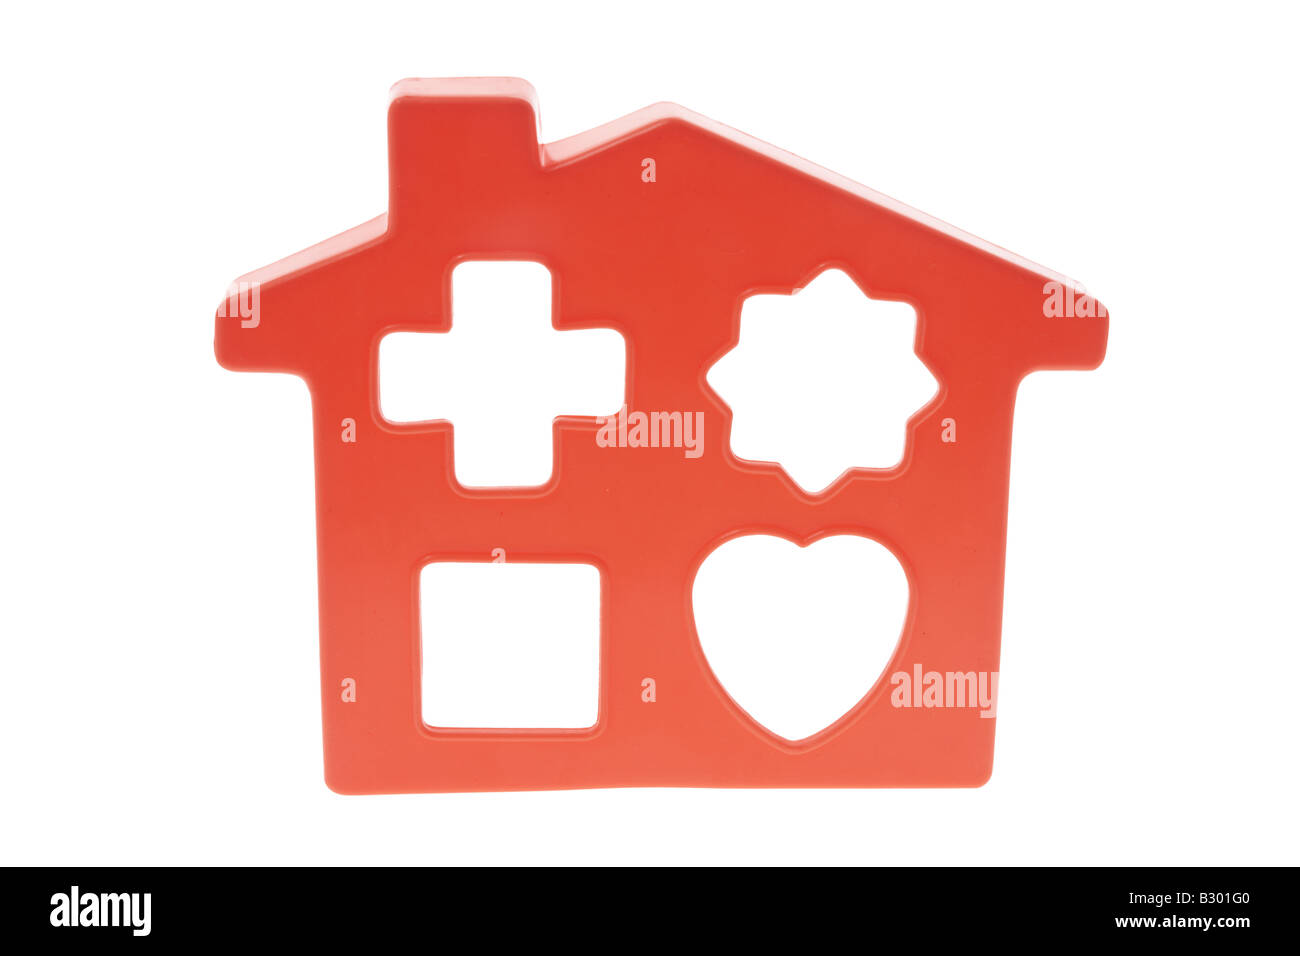 Toy House Template Stock Photos & Toy House Template Stock